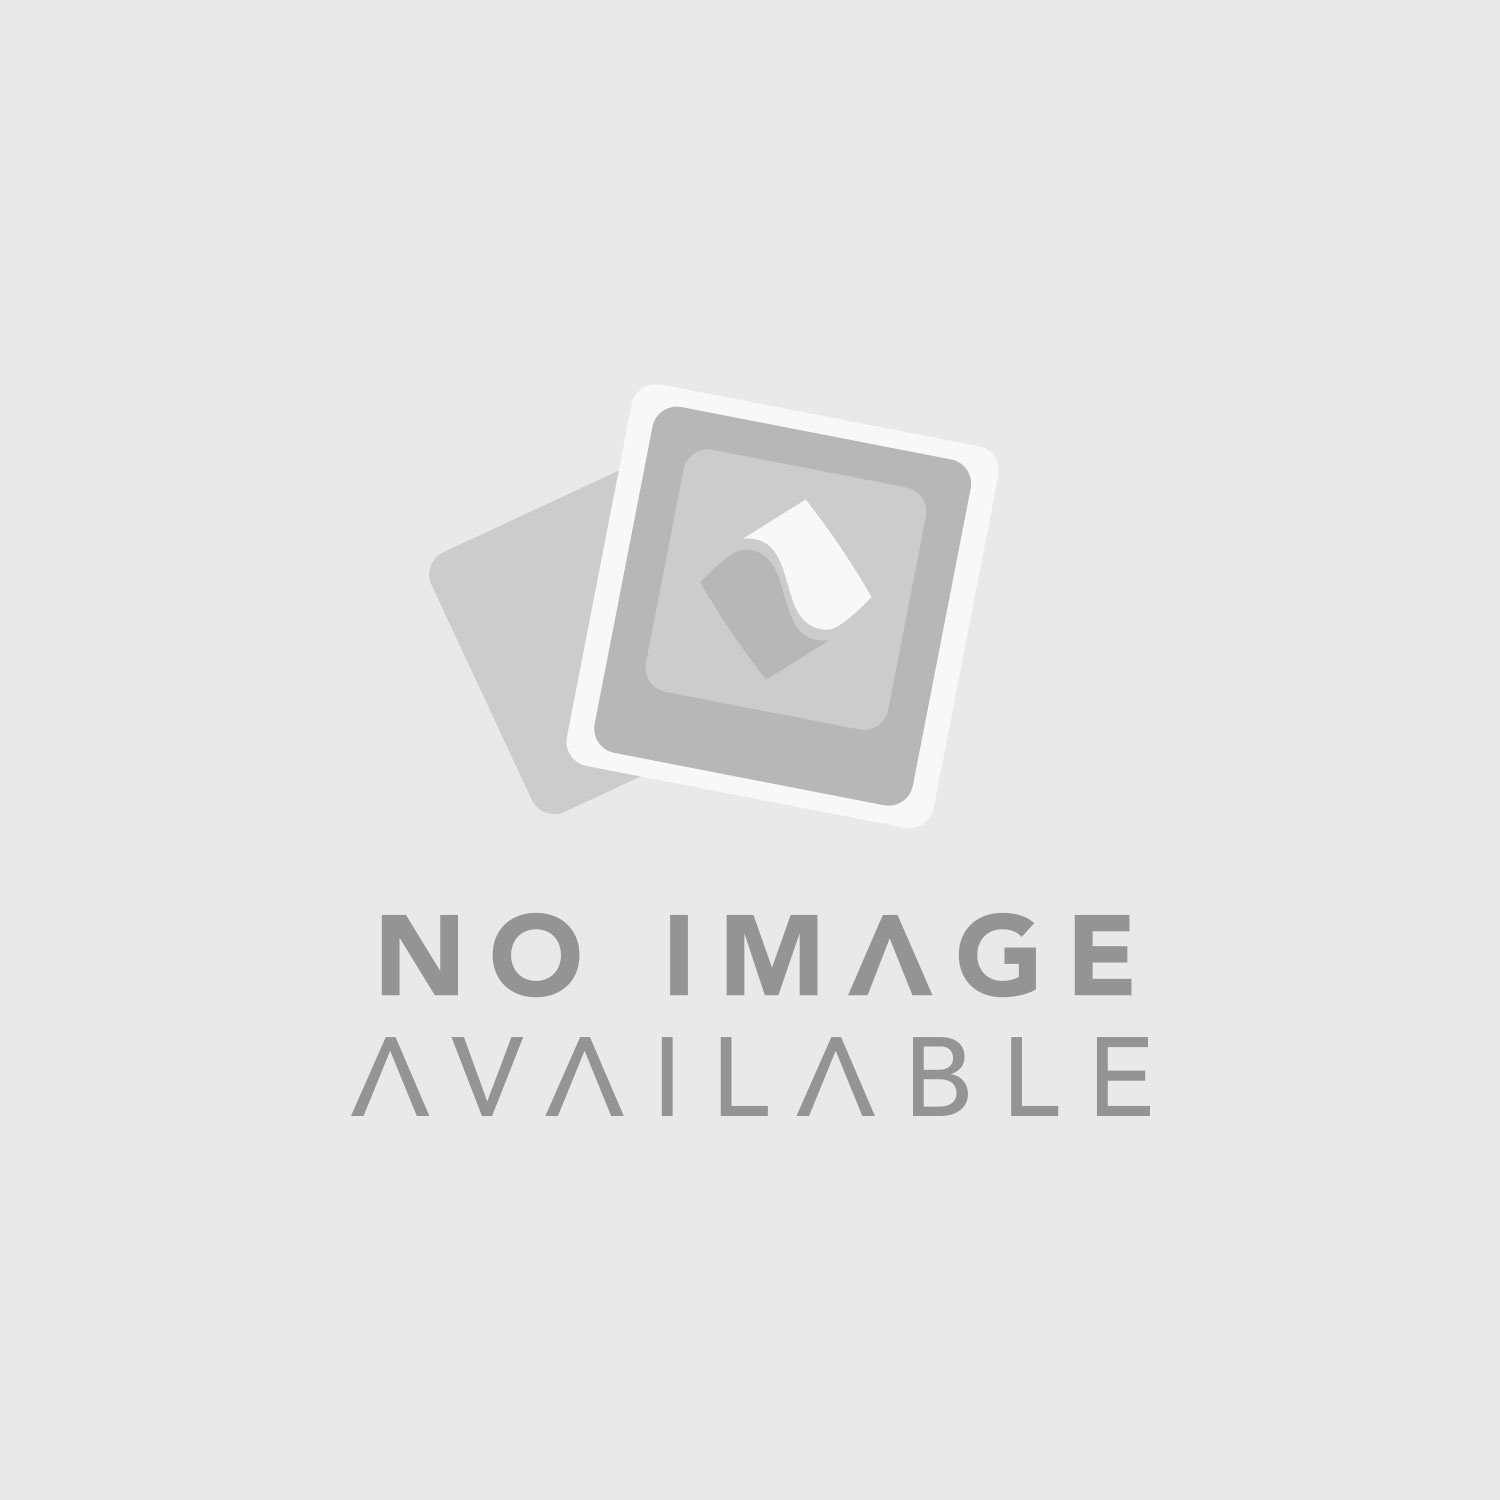 Allen & Heath ZED-18 18-Channel Live/Recording Mixer